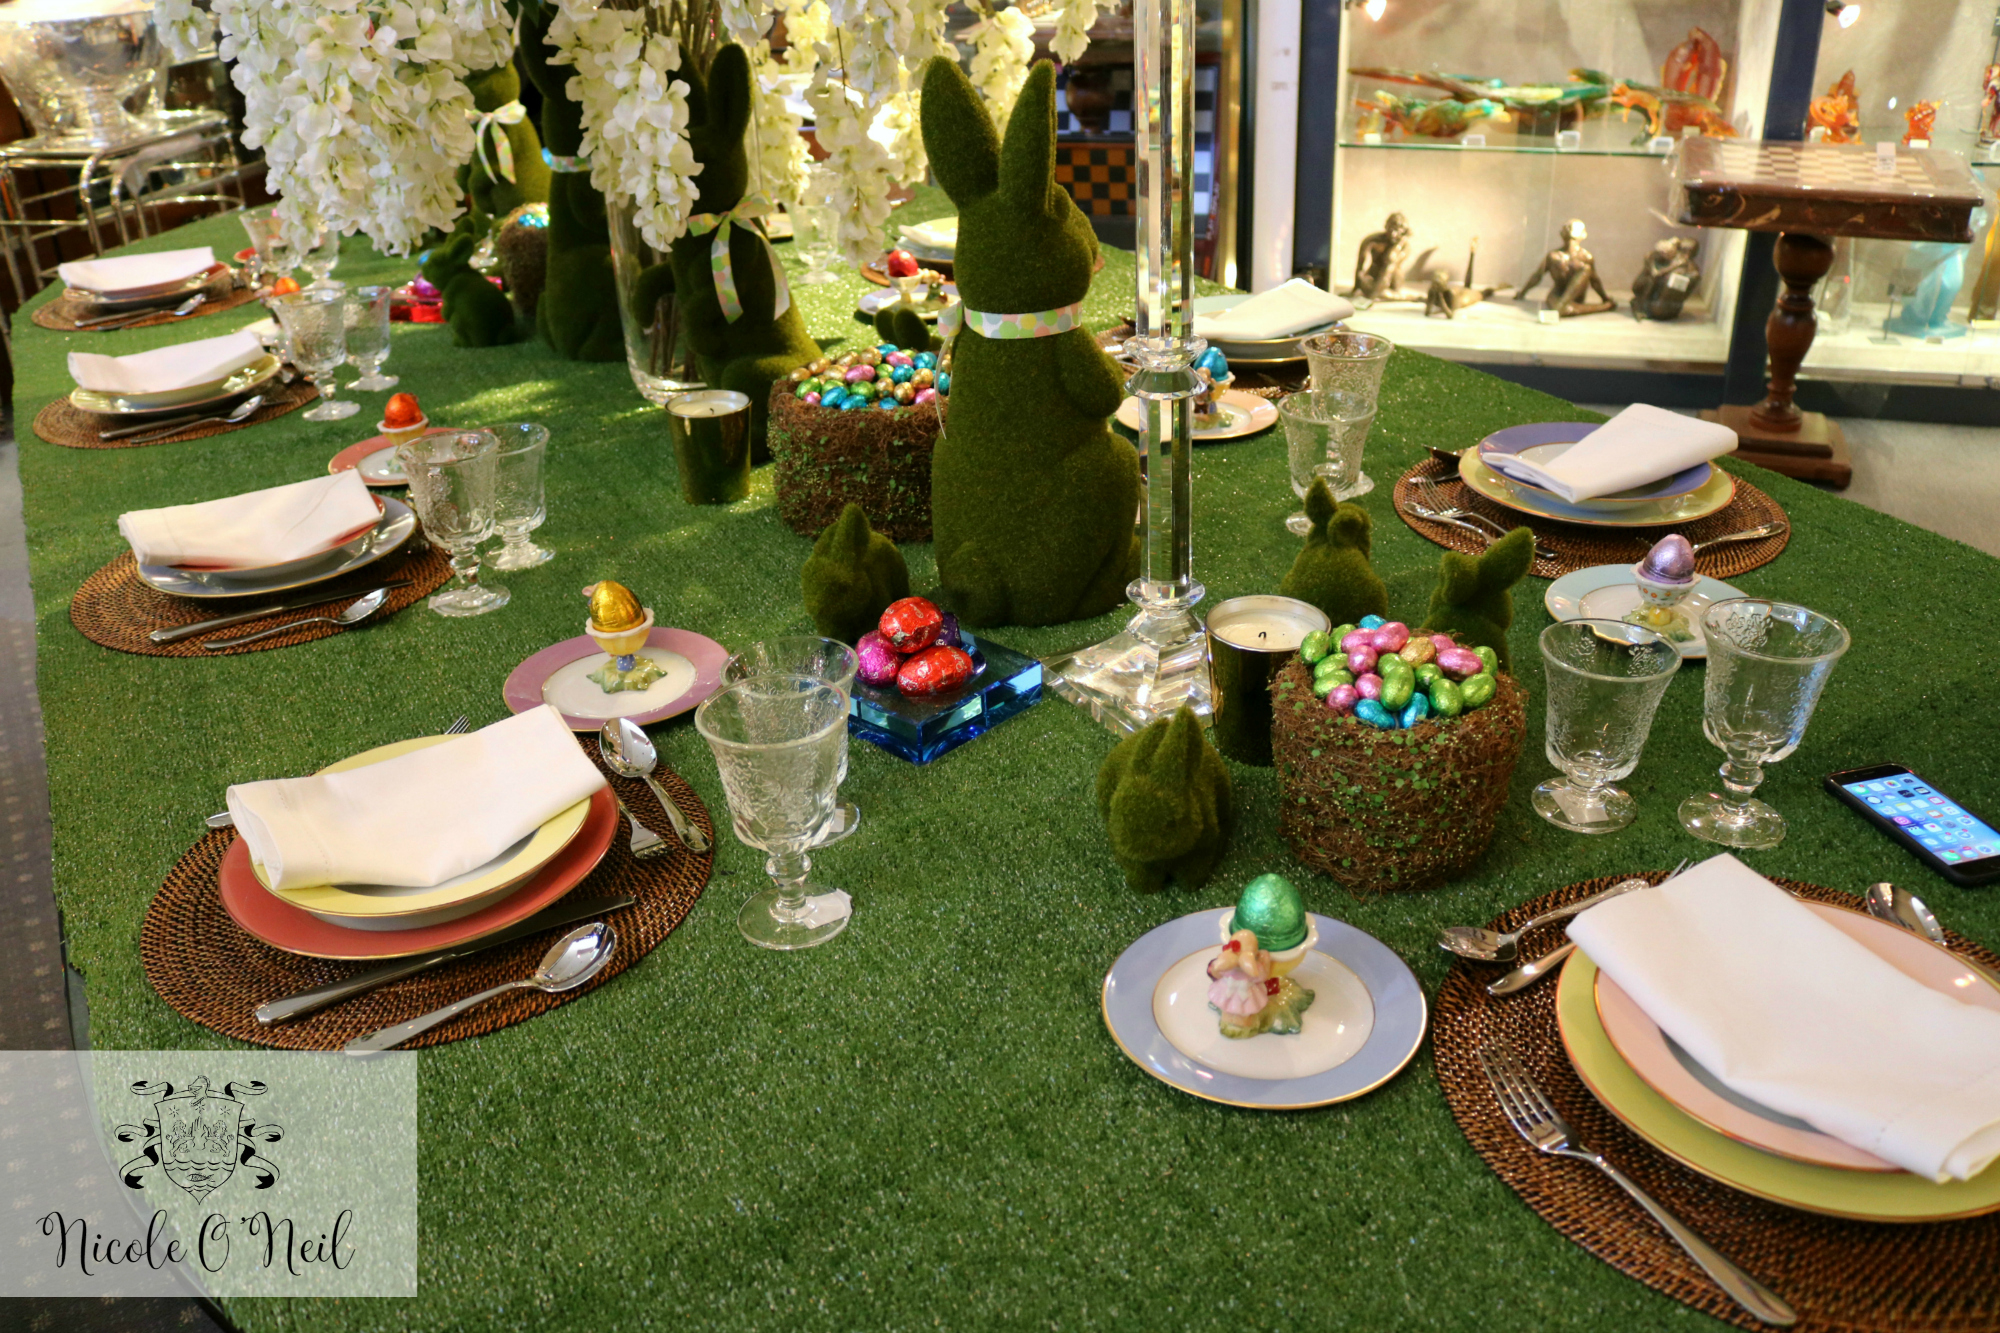 Easter Table Setting Inspiration - How to Decorate An Easter Table